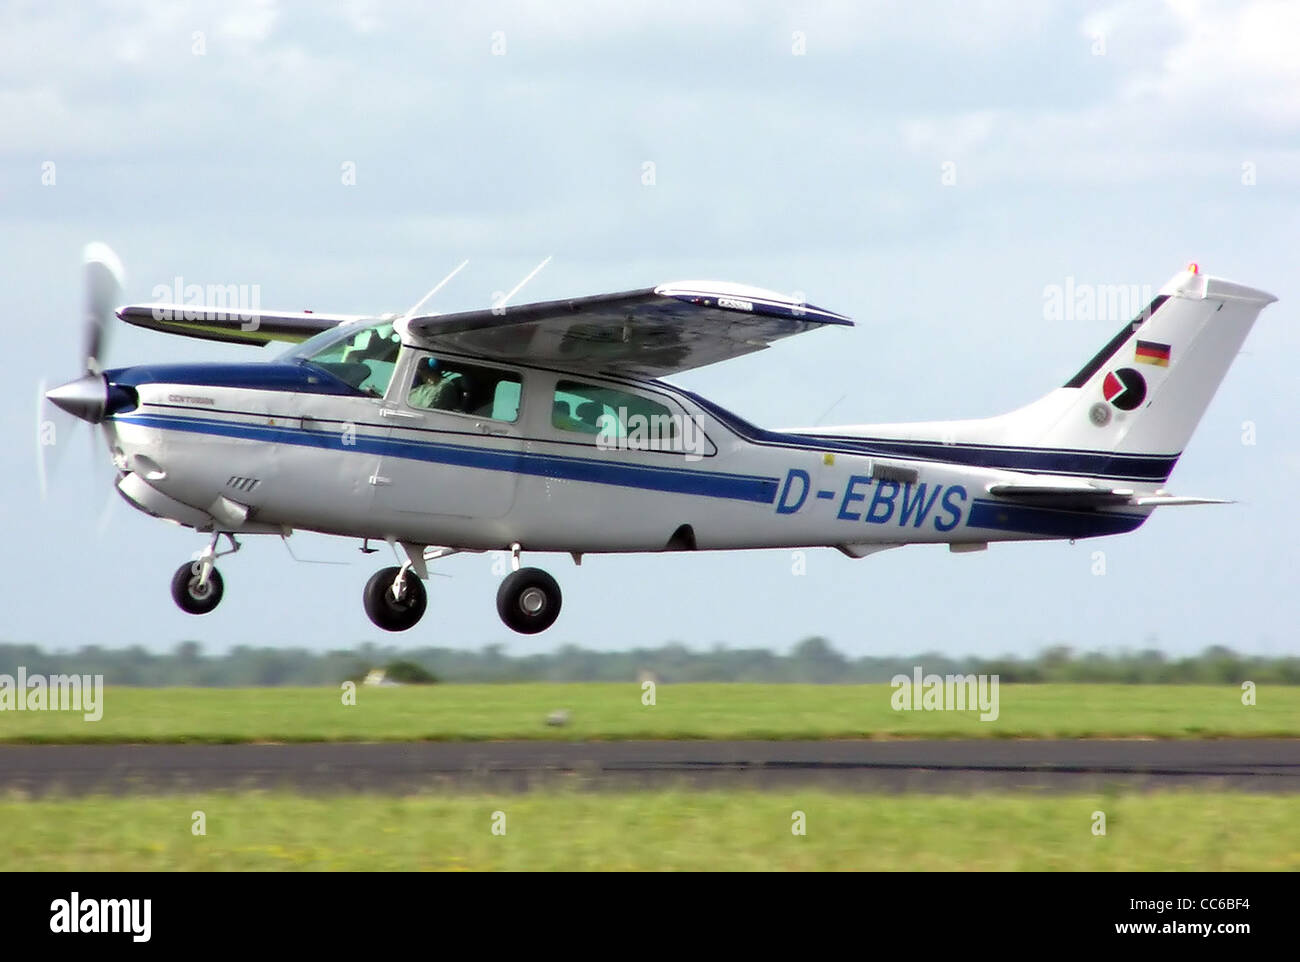 Cessna 210 Centurion (German registration D-EBWS), year of build unknown) at Kemble Airfield, Gloucestershire, England. - Stock Image